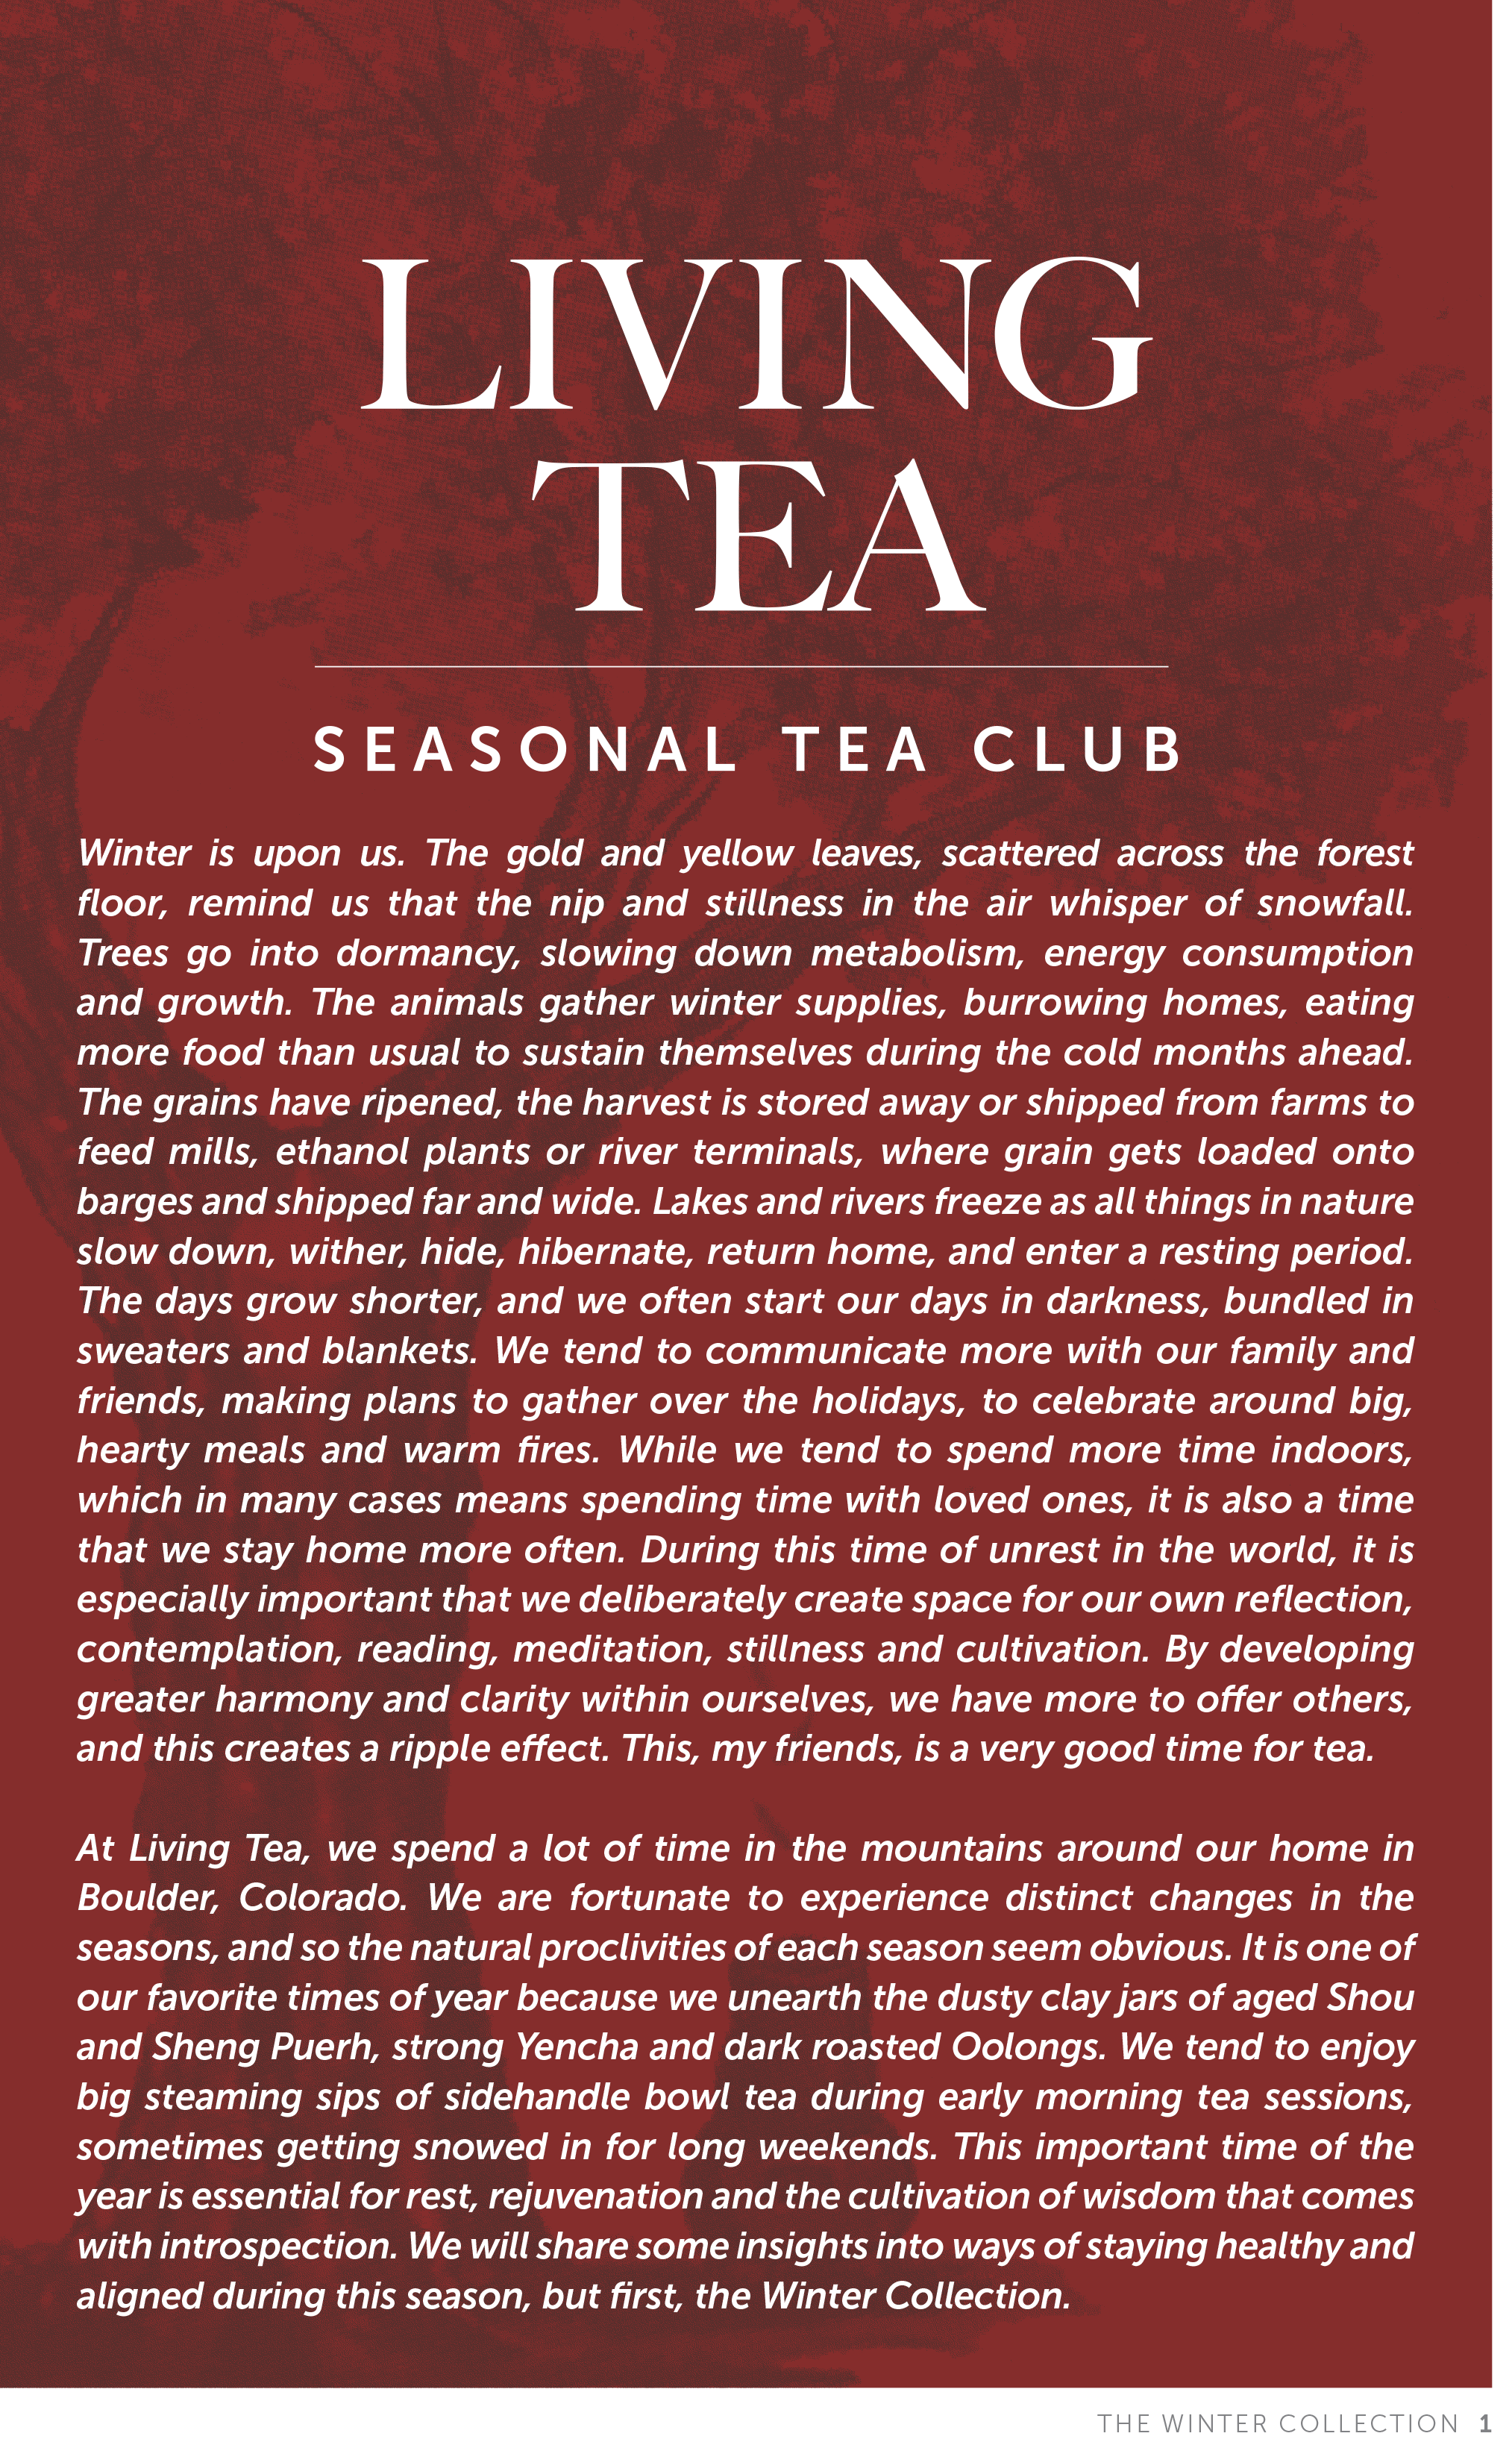 Living Tea Seasonal Tea Club Winter 2018